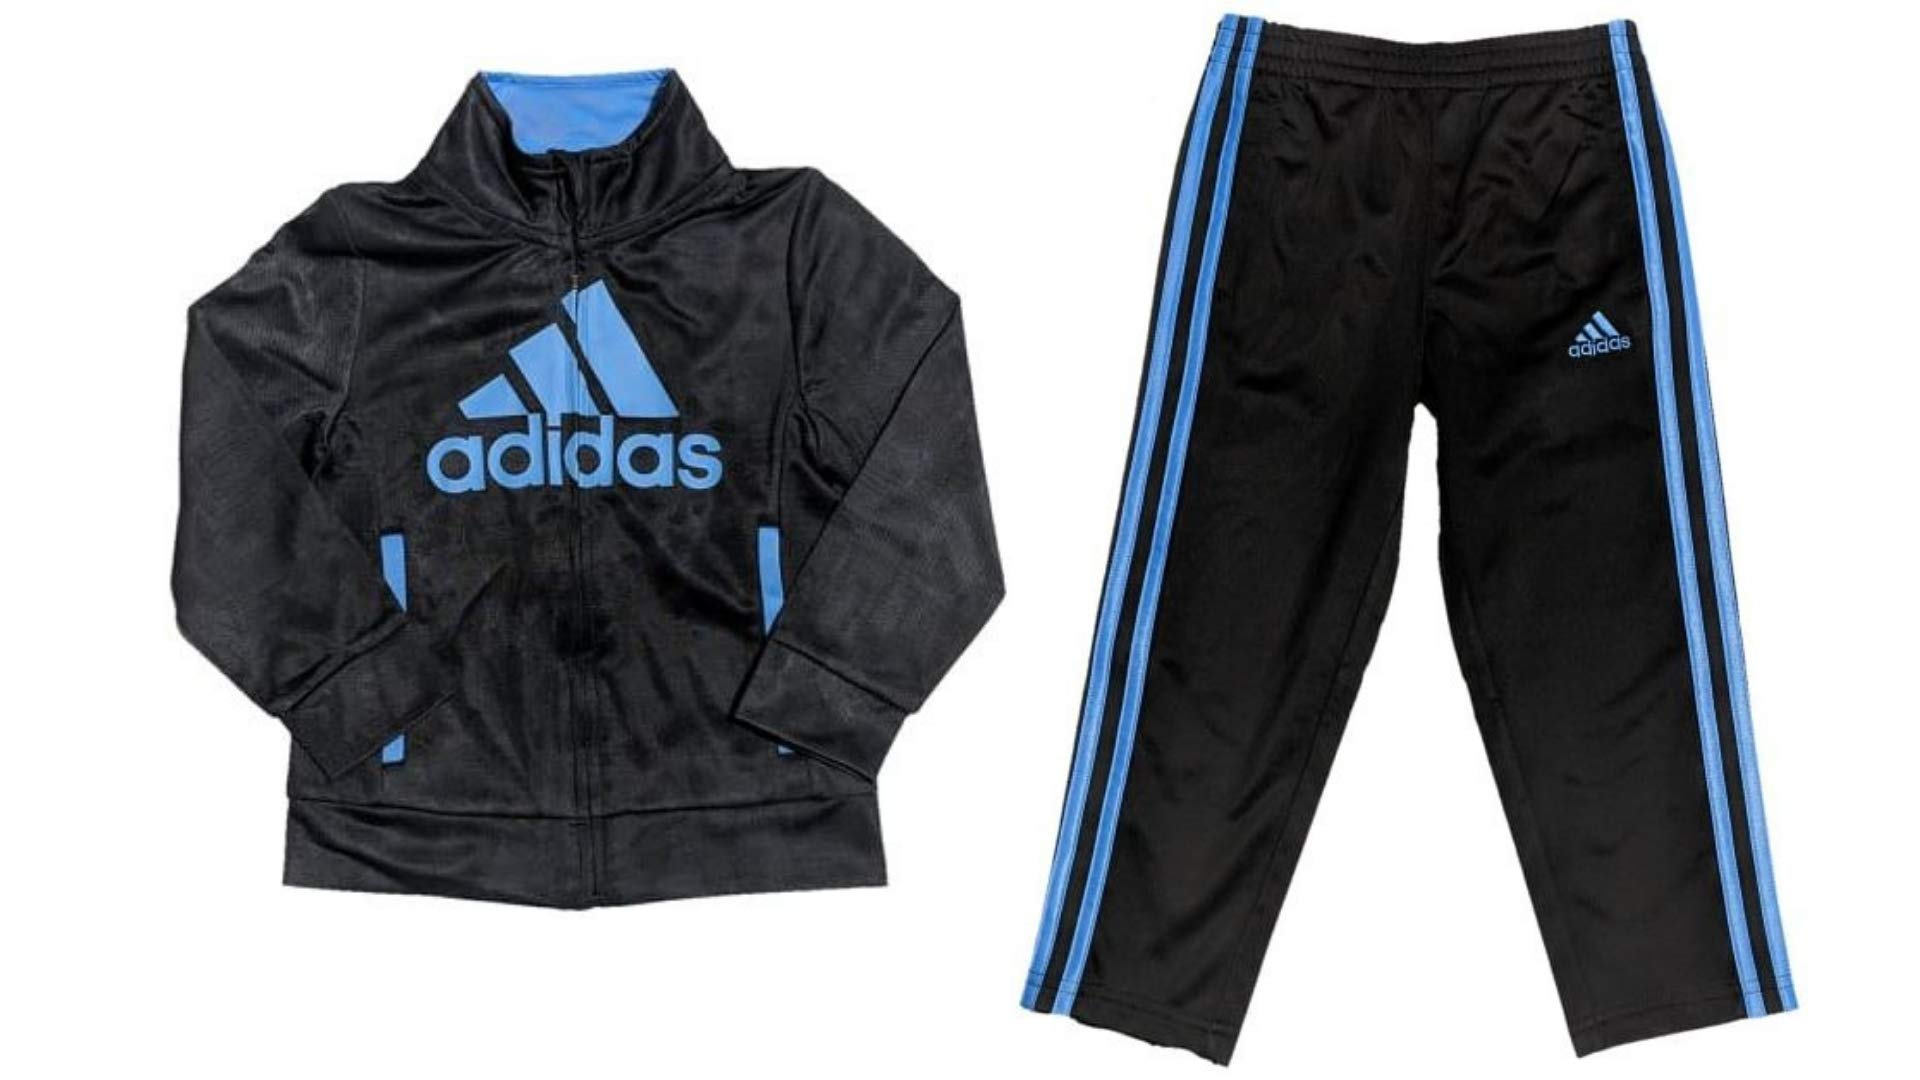 adidas Toddler Boys' Iconic Tricot Jacket and Pant Set, Black/Blue, 3T by adidas